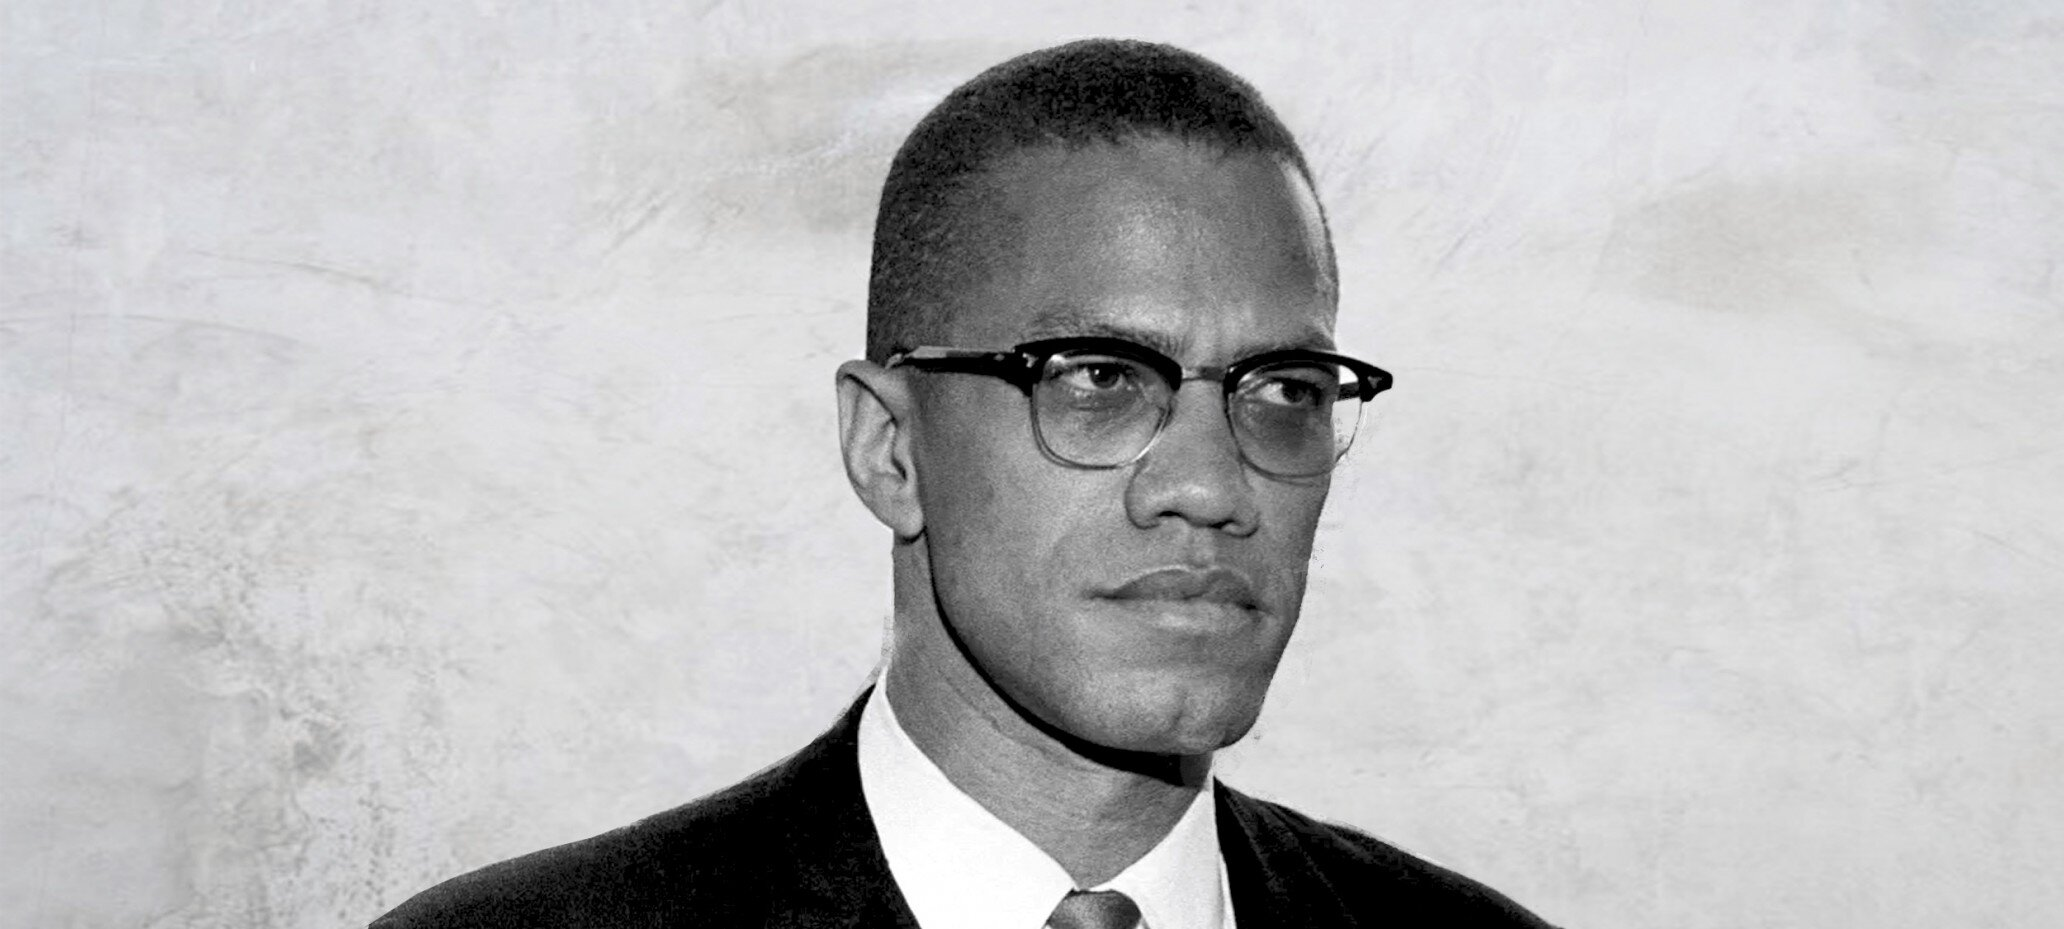 Malcolm X (1925-1965) was a Muslim minister and controversial black civil rights activist. || Photo credit to Wikipedia